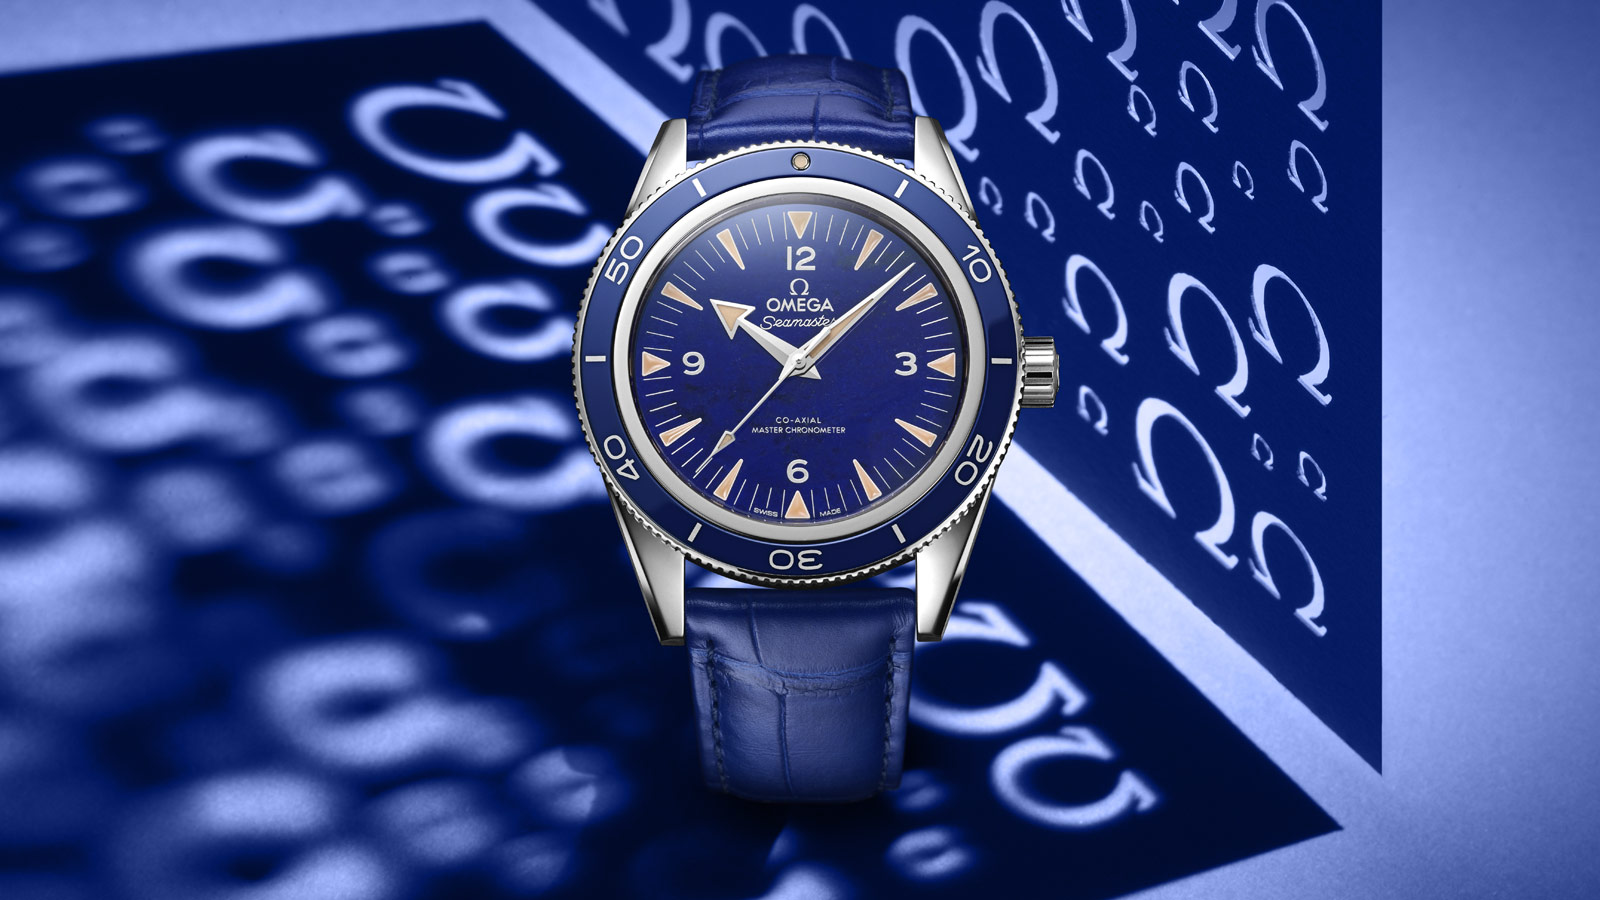 Seamaster Seamaster 300 Seamaster 300 Omega Co‑Axial Master Chronometer 41 mm Watch - 234.93.41.21.99.002